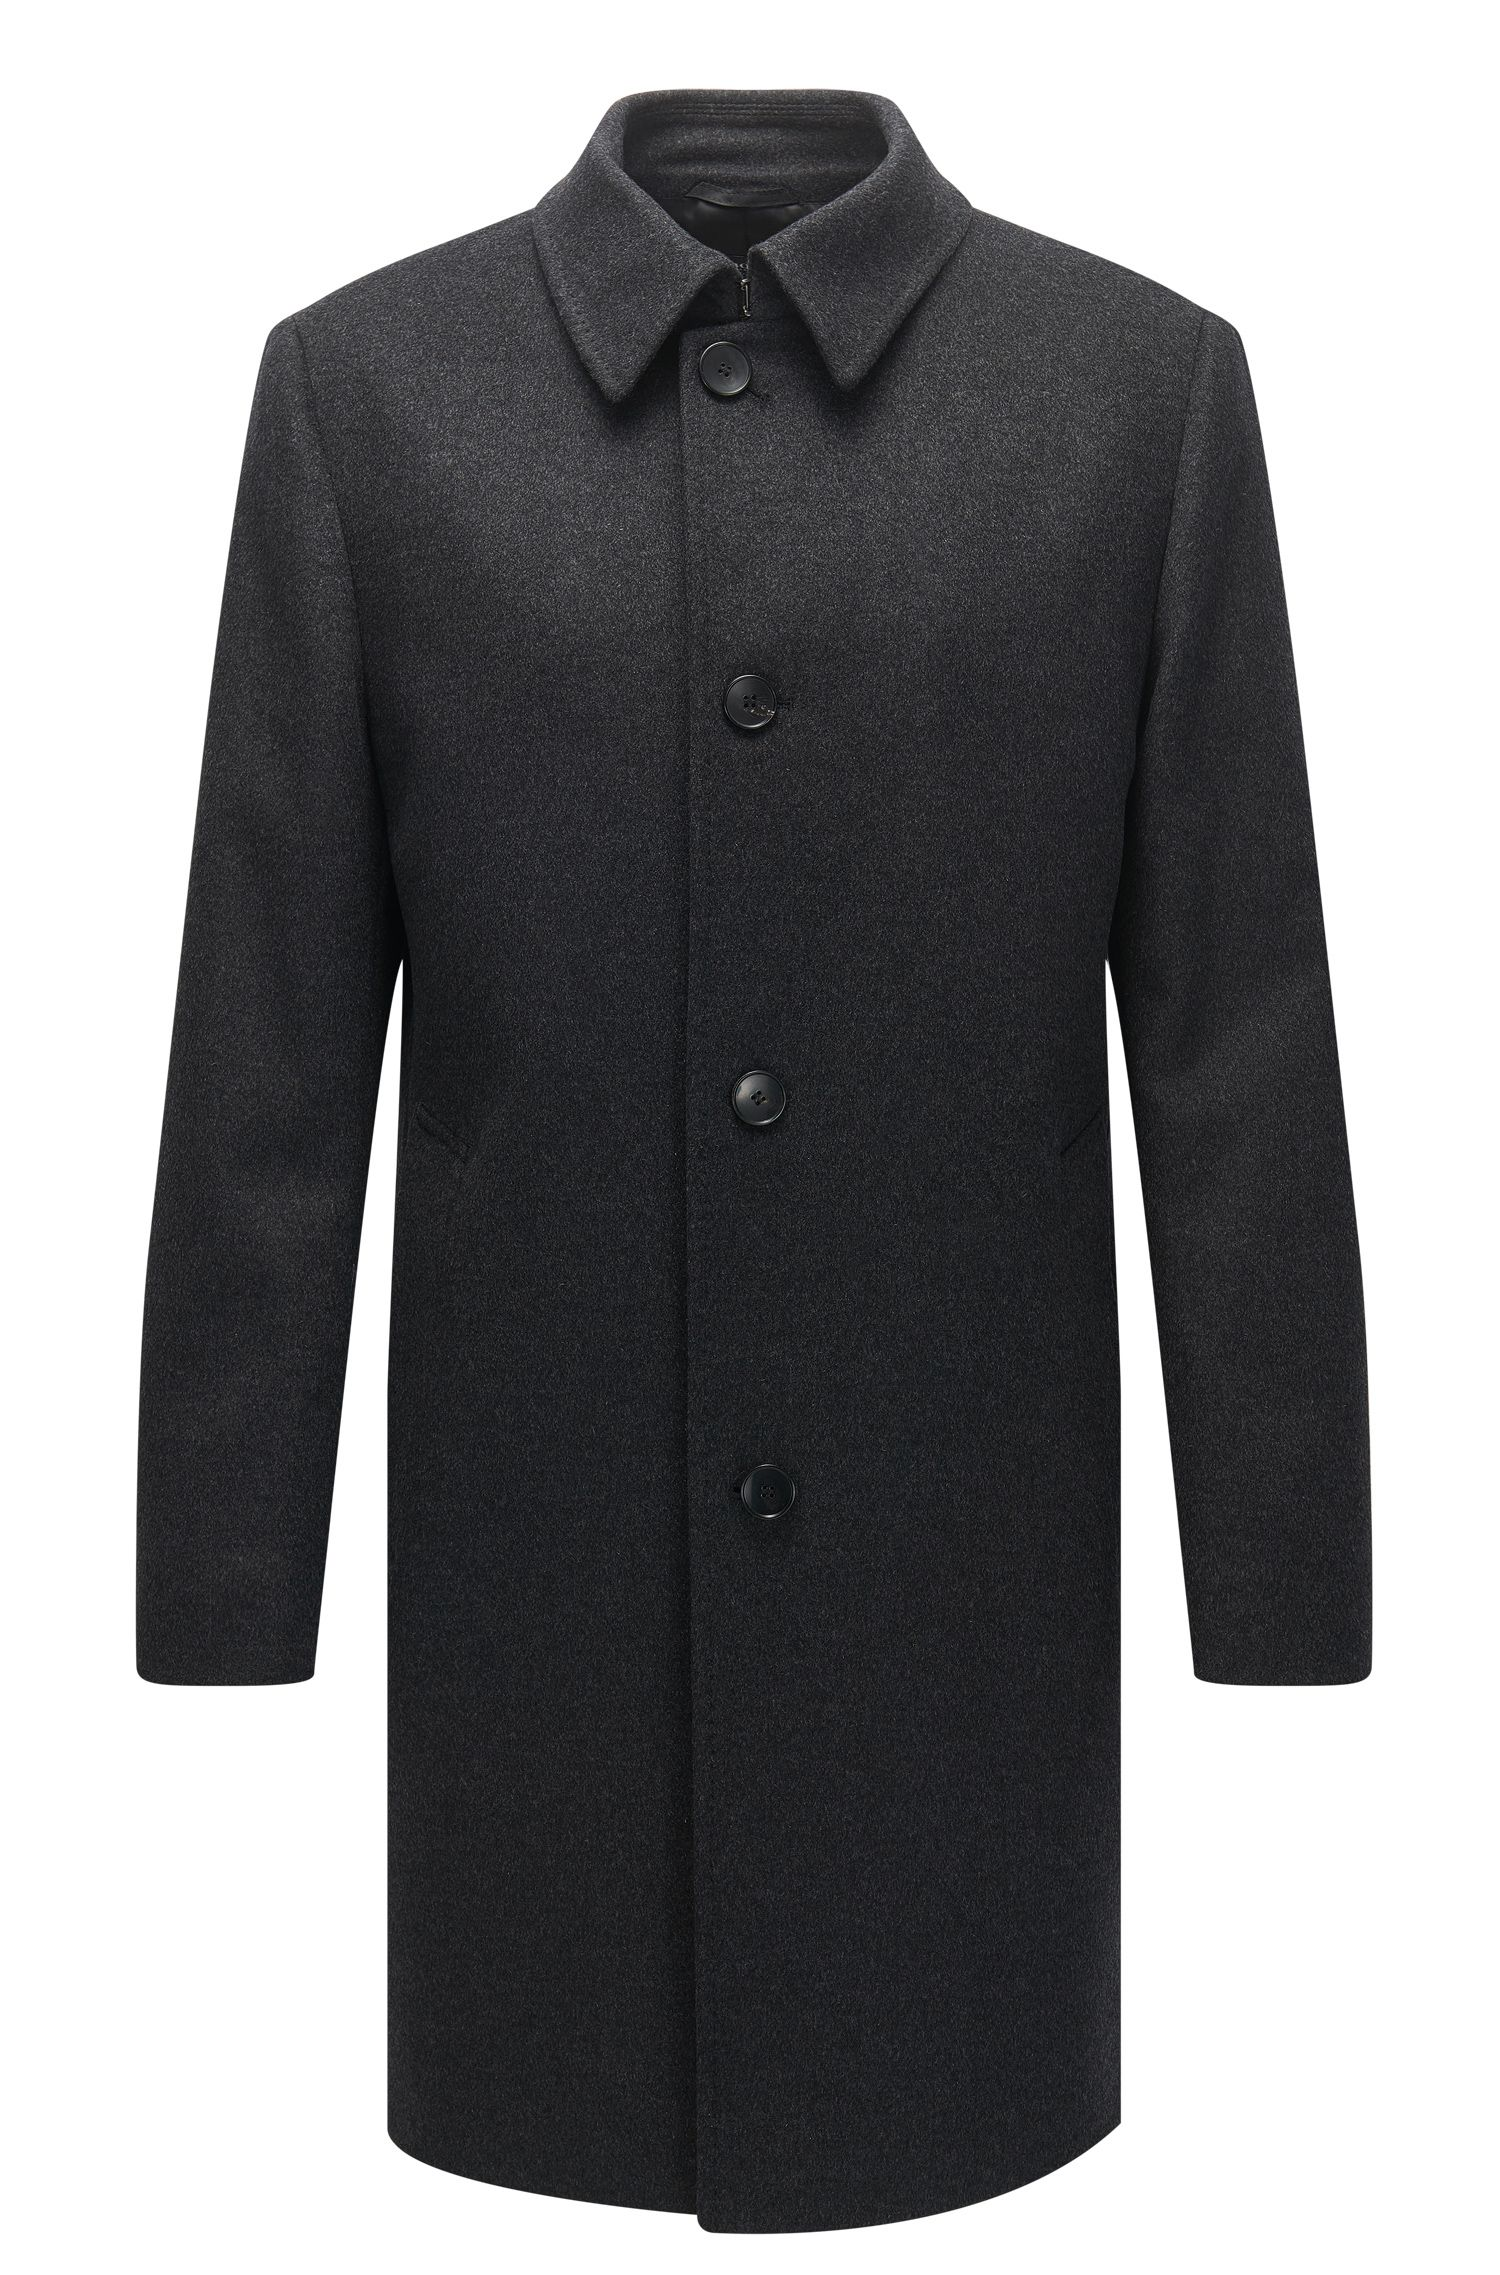 Wool-blend coat in a regular fit